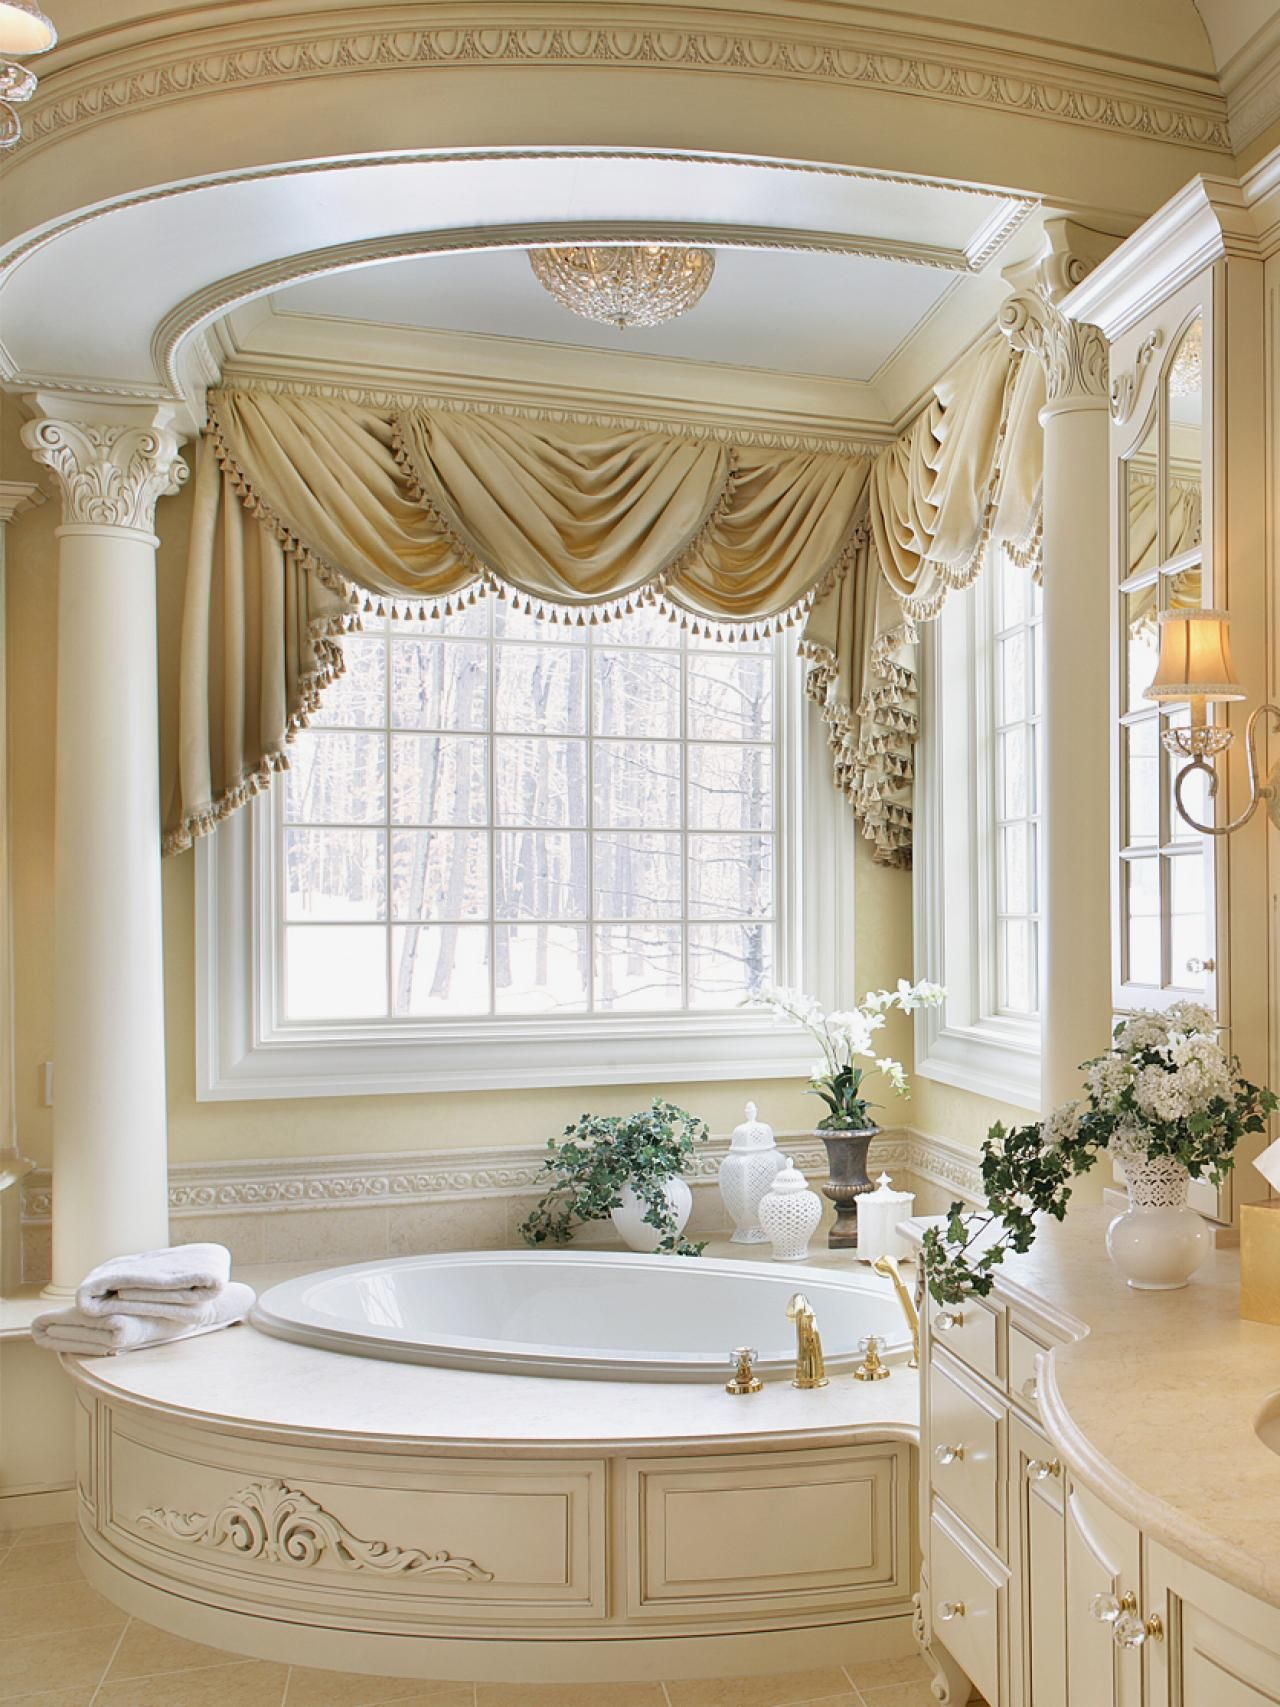 Photo of French Country Bathroom Design